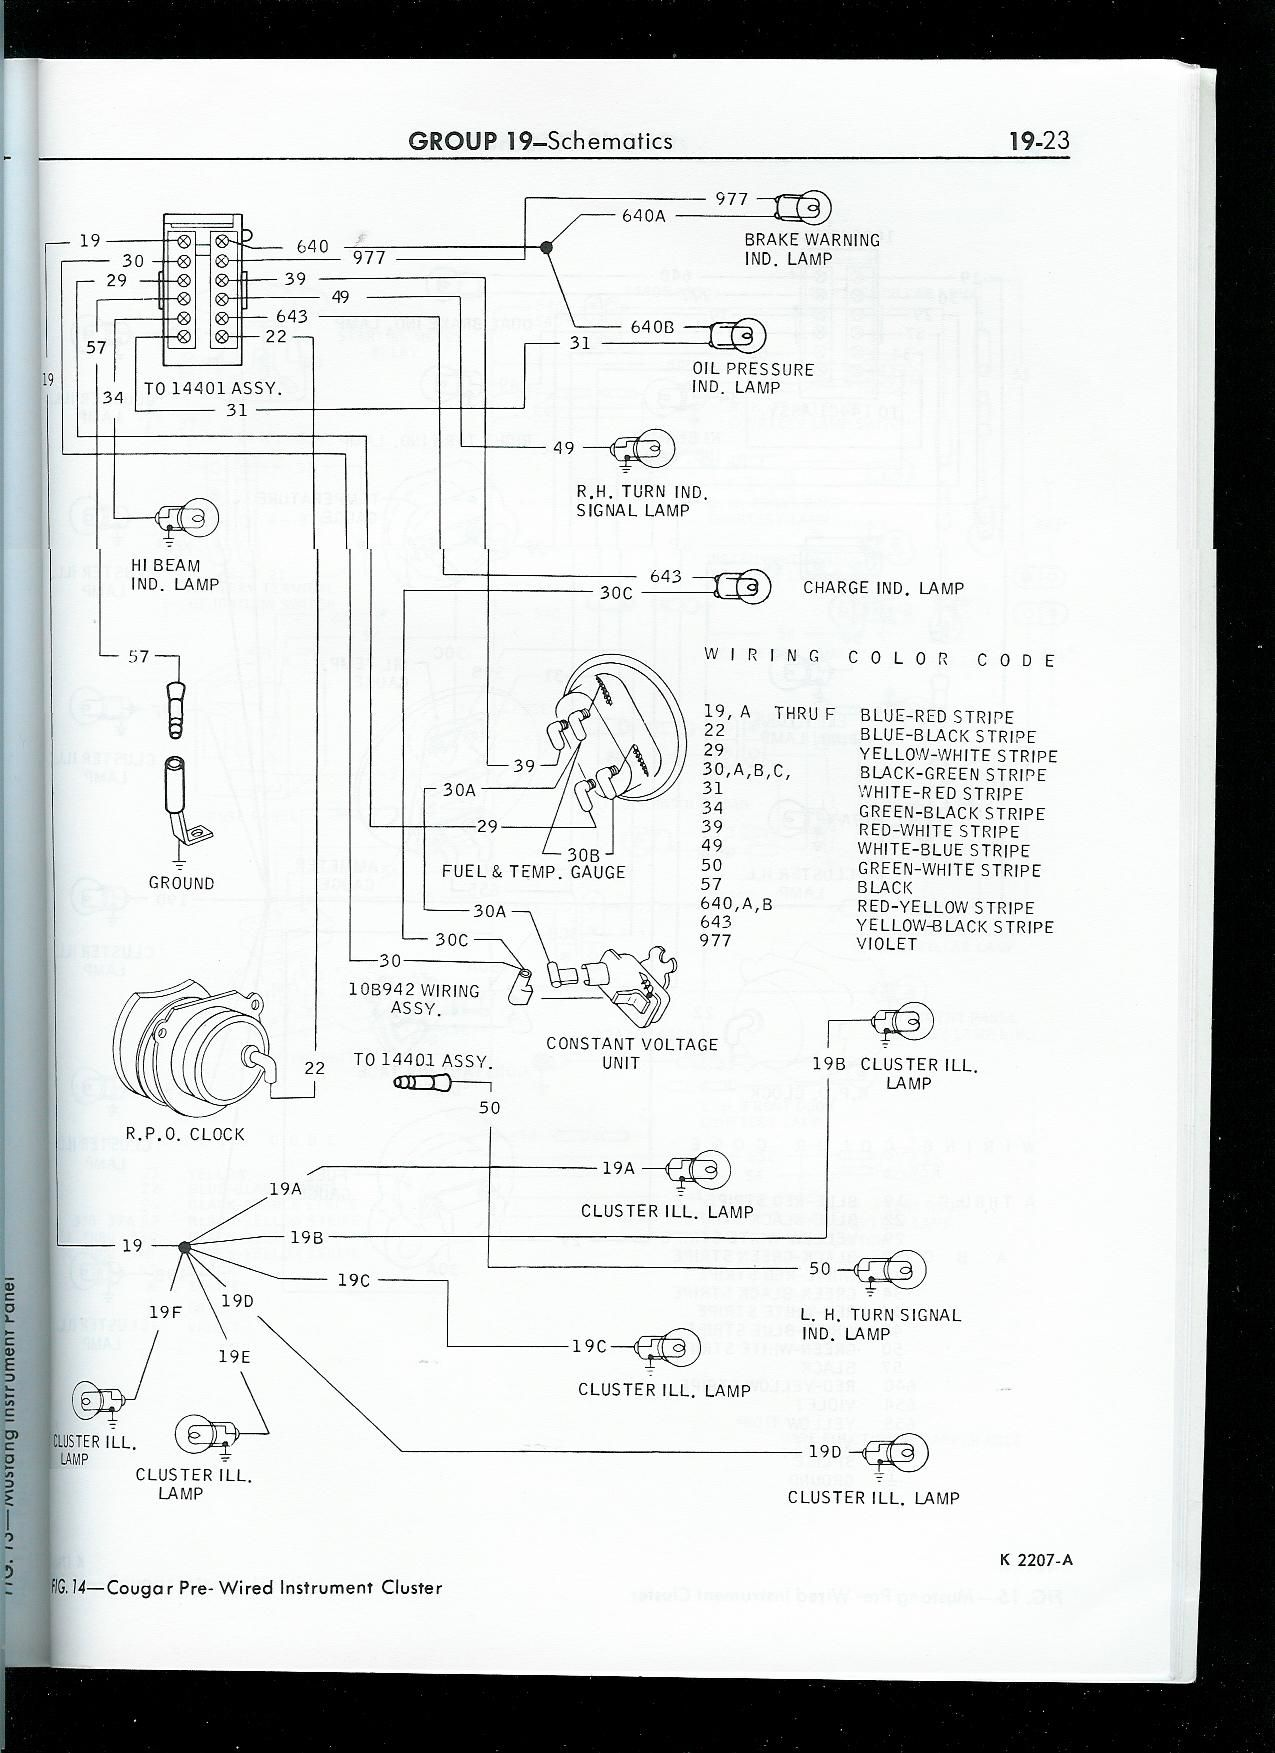 1967 Mustang Instrument Panel Wiring Diagram Wiring Diagram Report A Report A Maceratadoc It